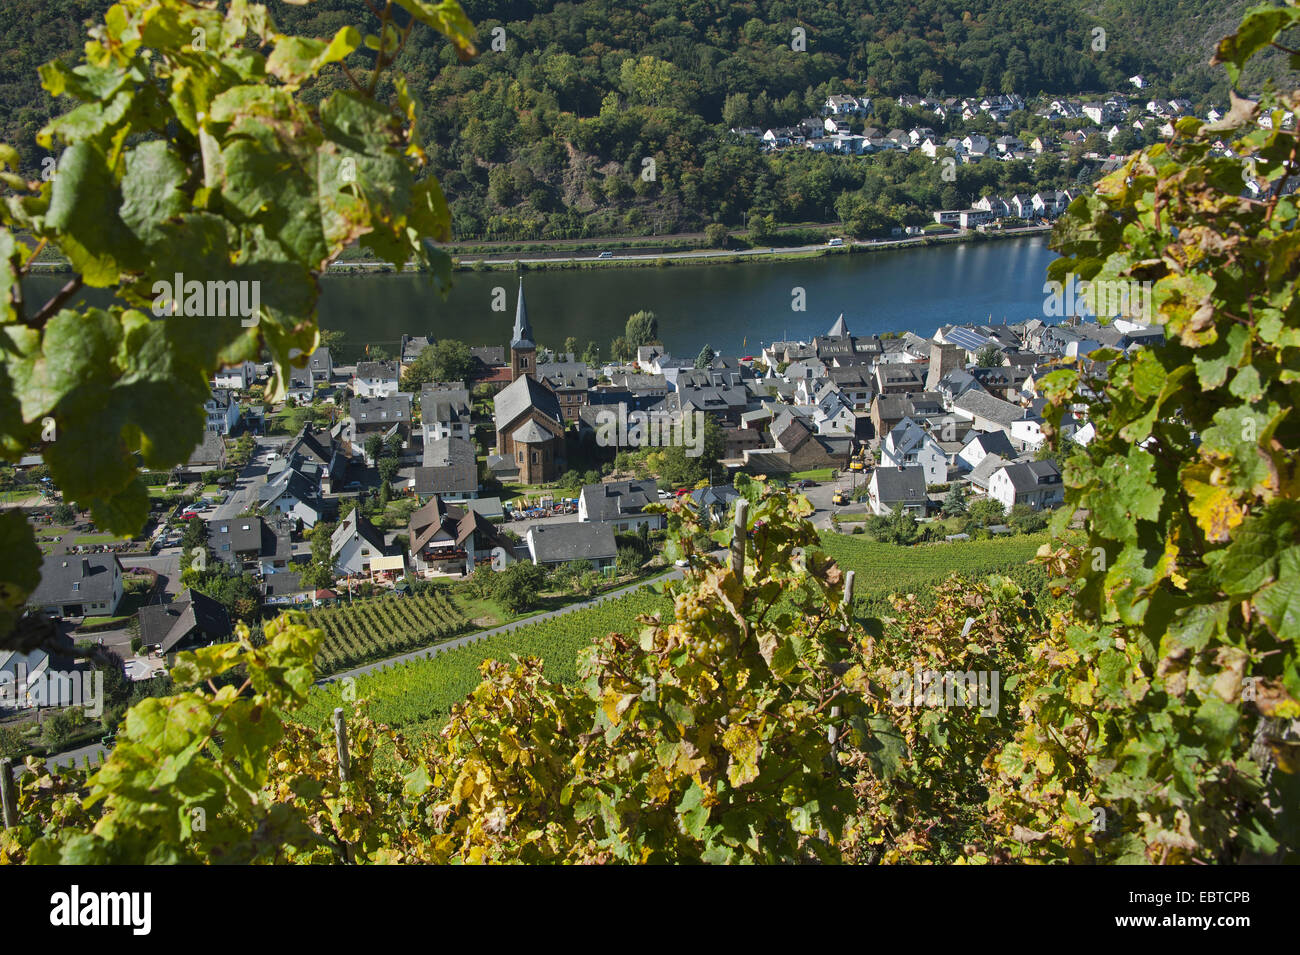 idyllic view from a vineyard on the towns Alken and Kattenes at the Mosselle, Germany, Rhineland-Palatinate - Stock Image